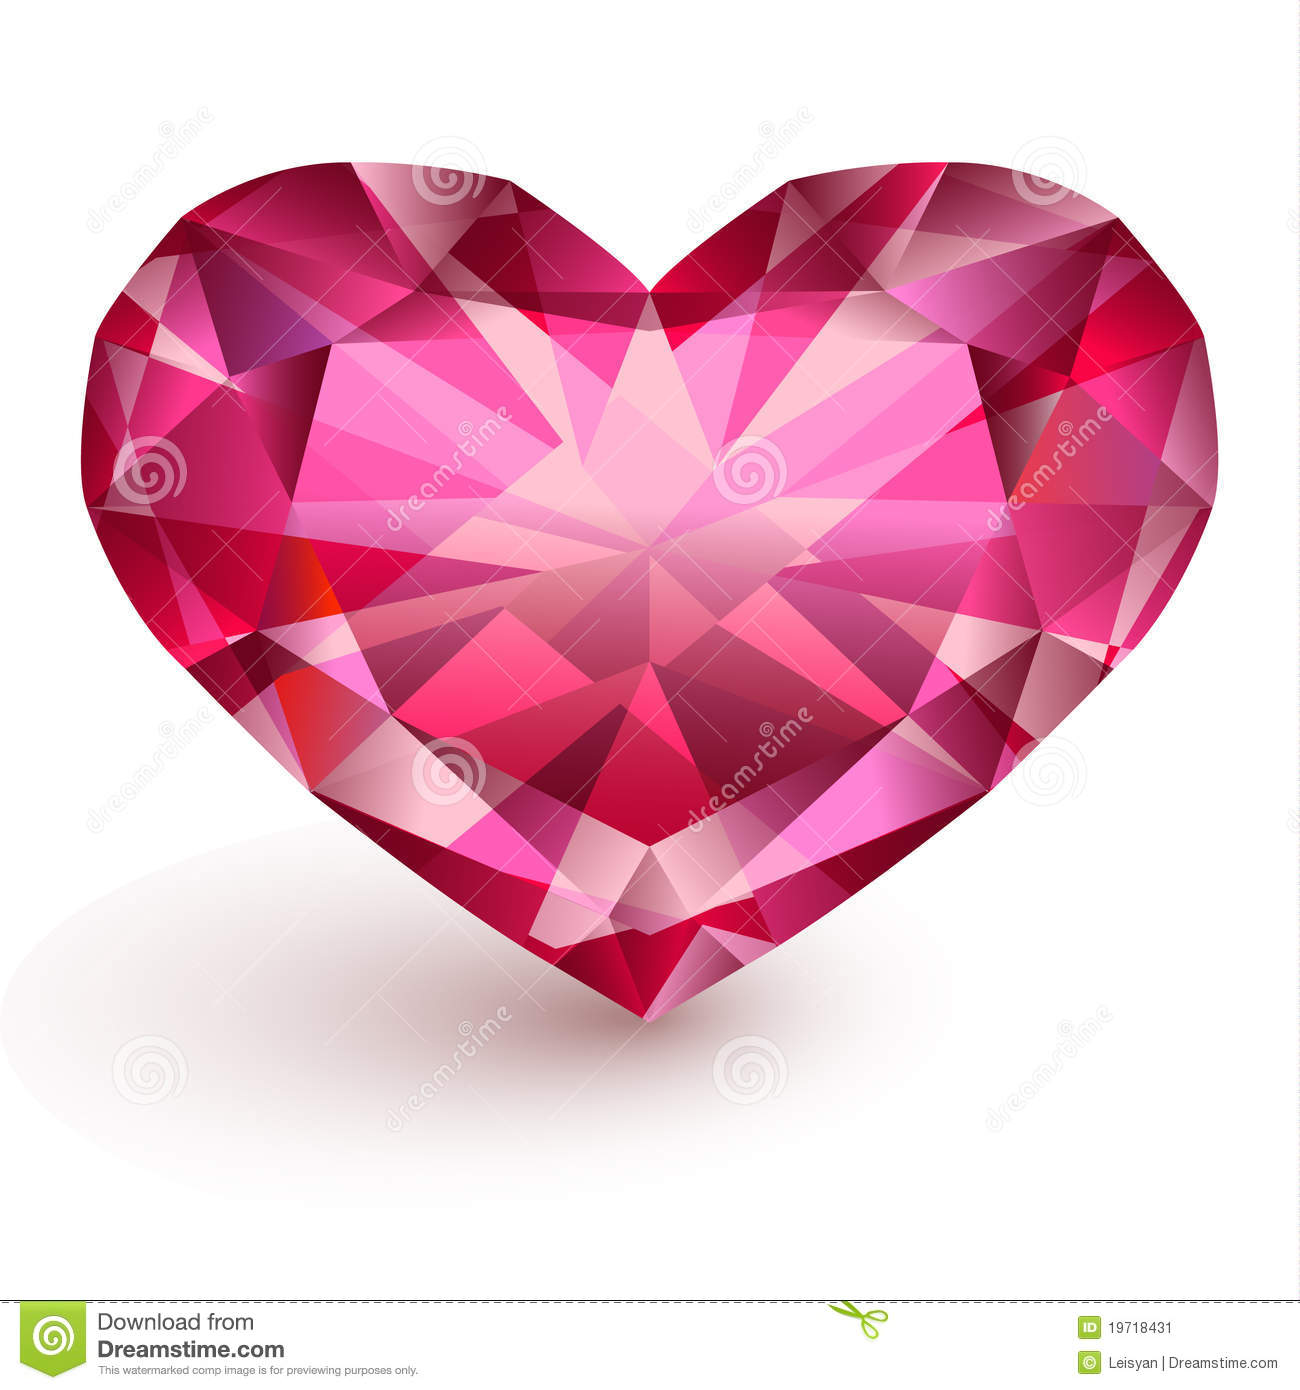 Heart free vector download 4218 Free vector for